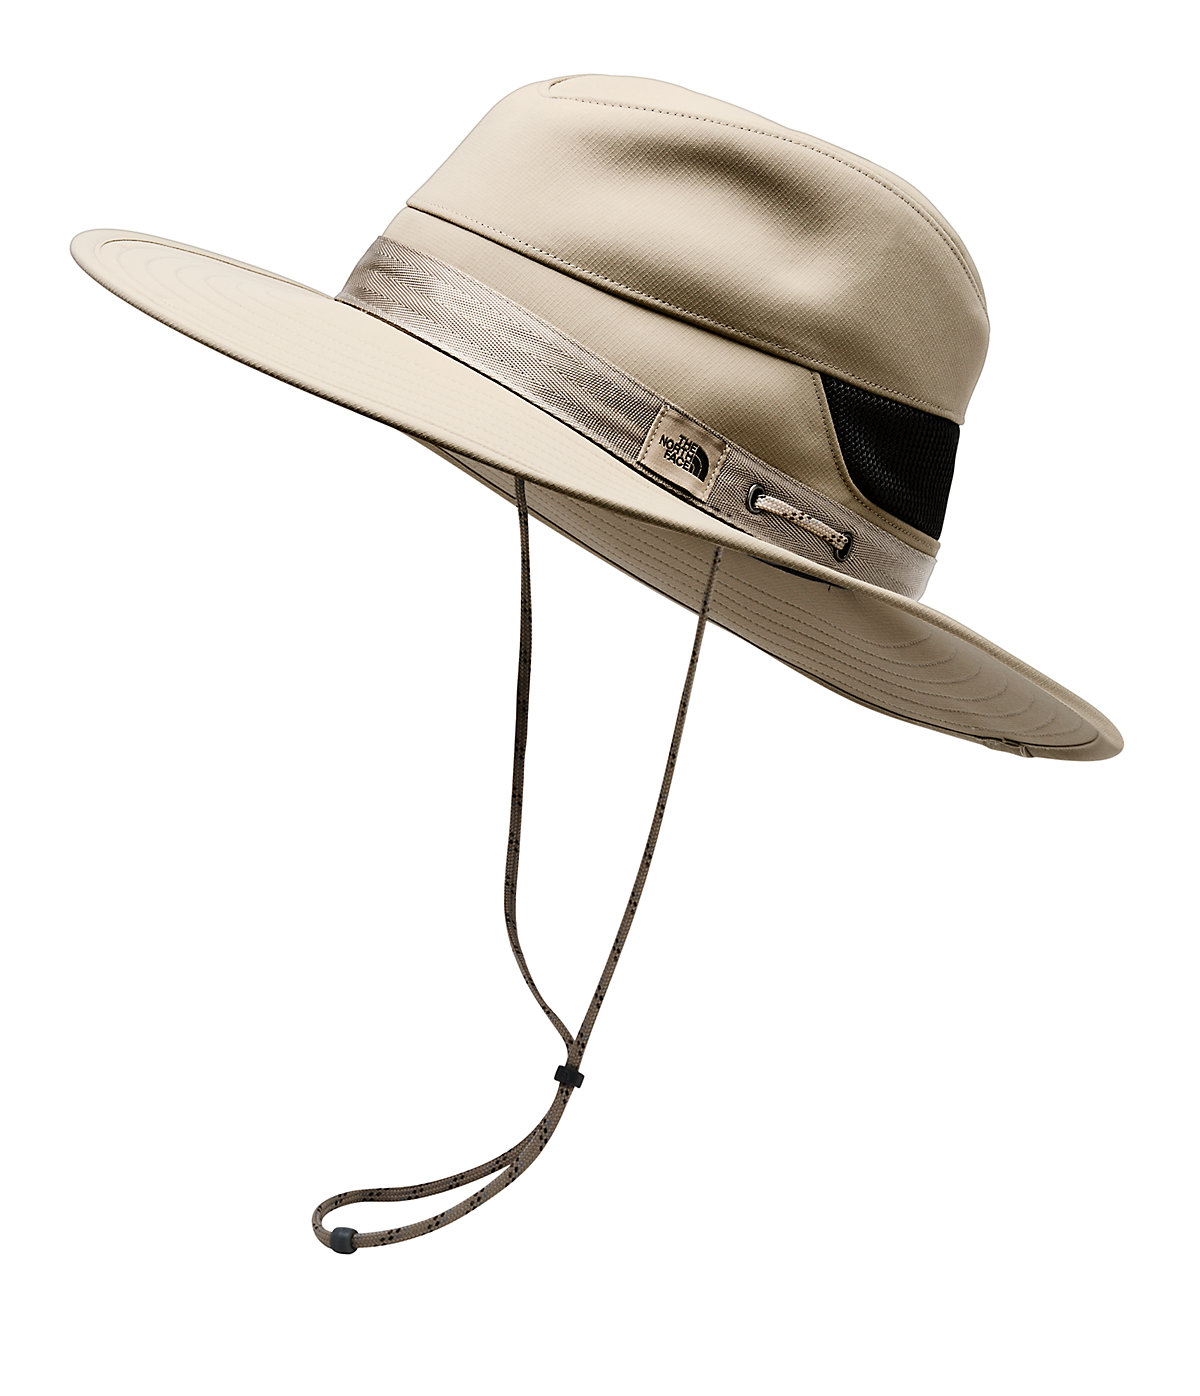 3dc5c10a3 Shadowcaster hat in 2019 | Products | Hats, Wide brimmed hats ...